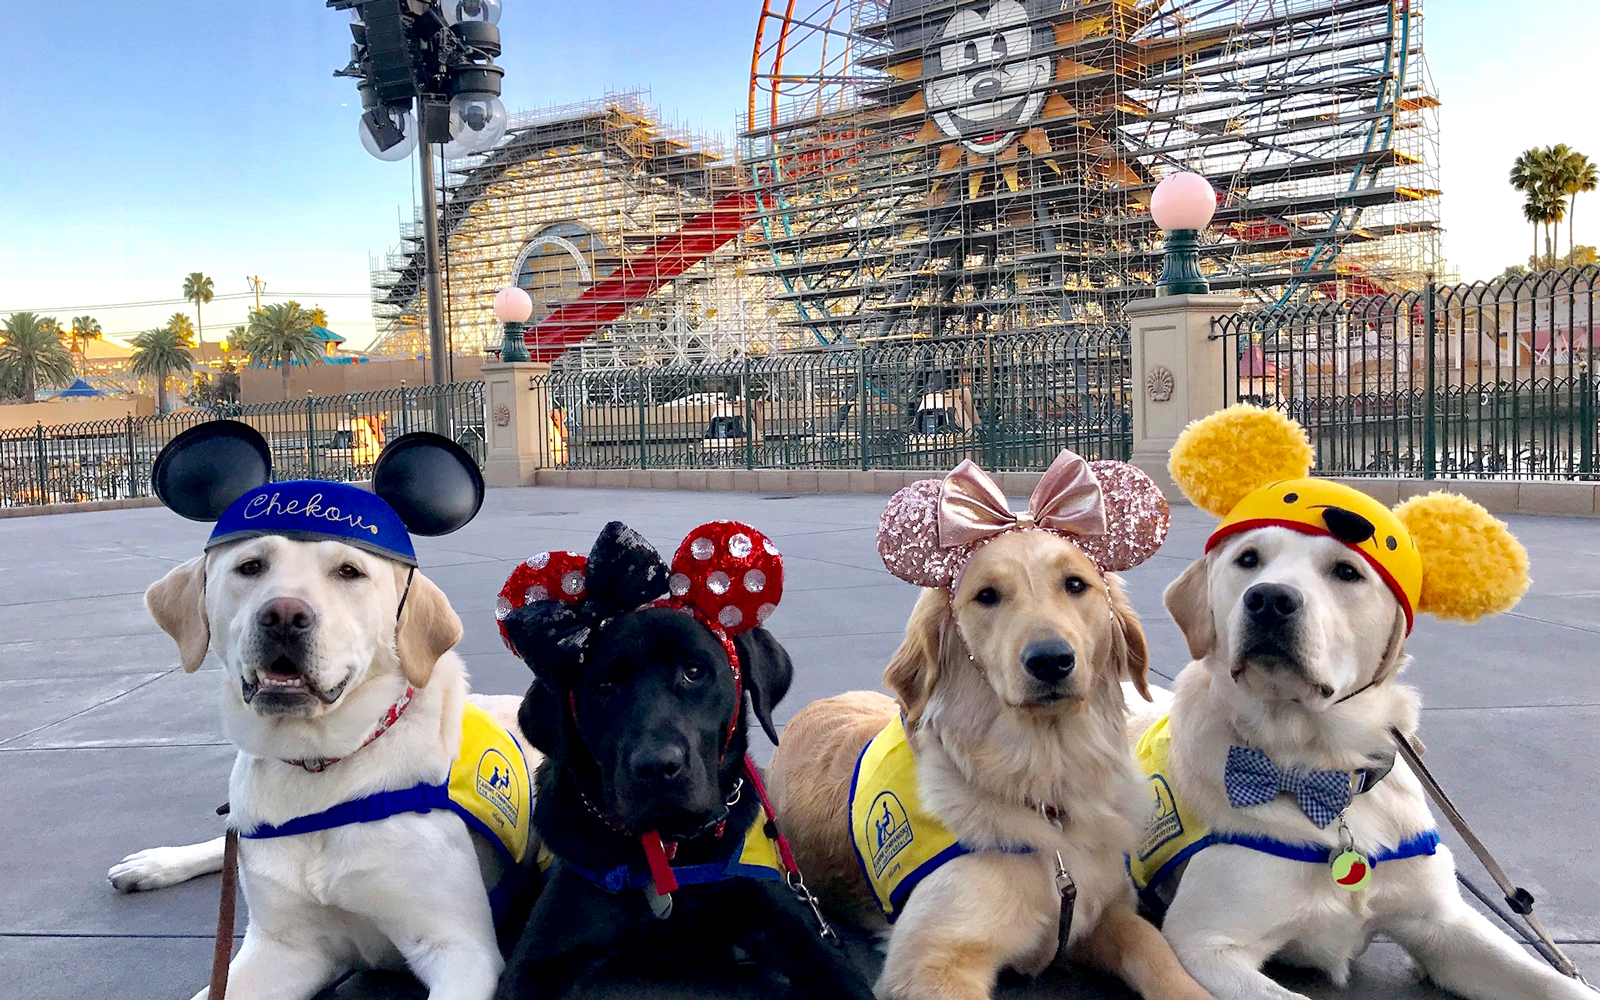 Canine Companions puppies at Disneyland